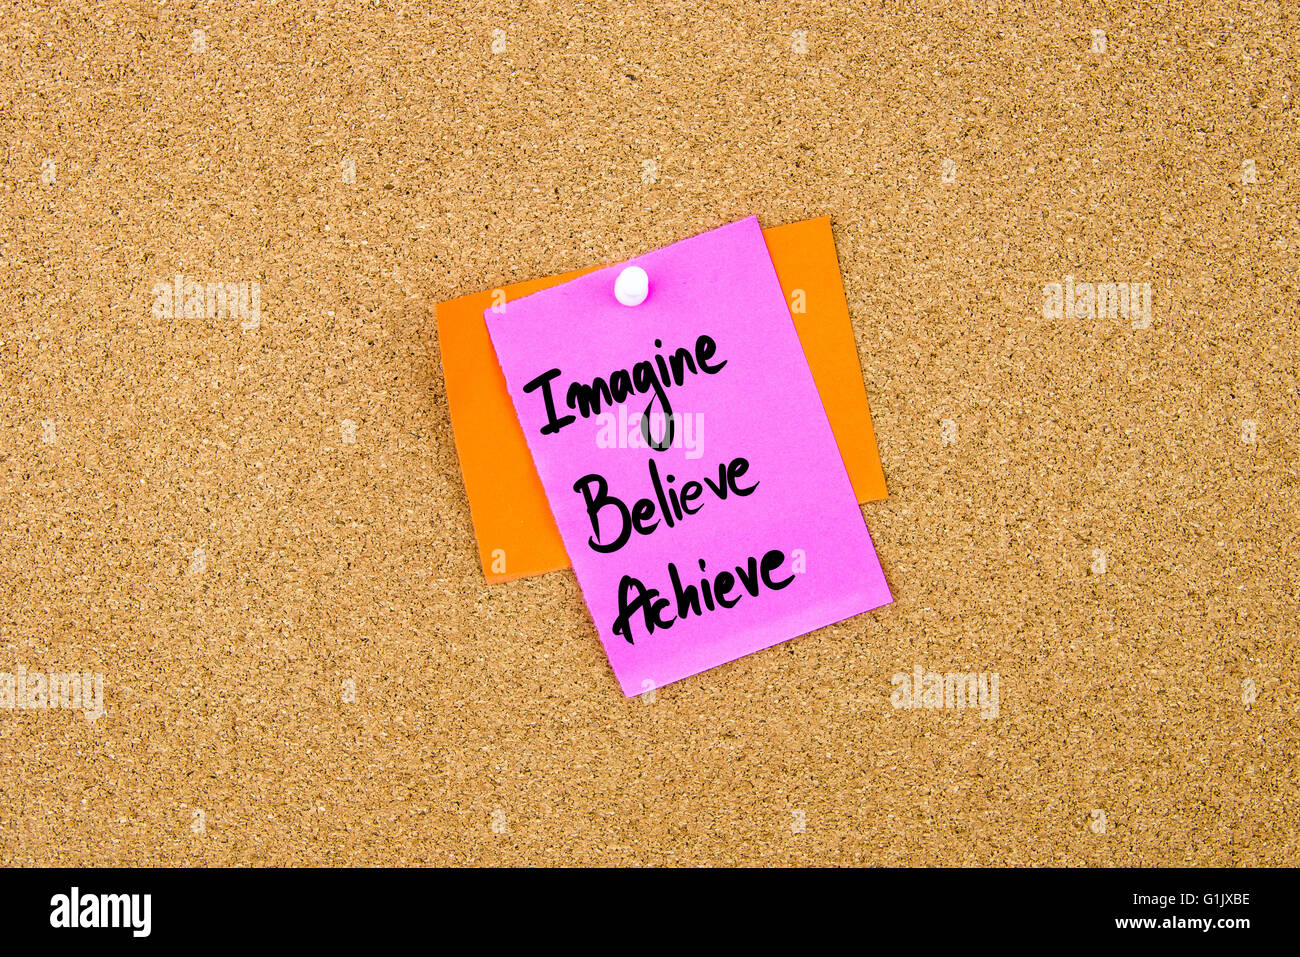 Imagine Believe Achieve written on paper note pinned on cork board with white thumbtack, copy space available - Stock Image